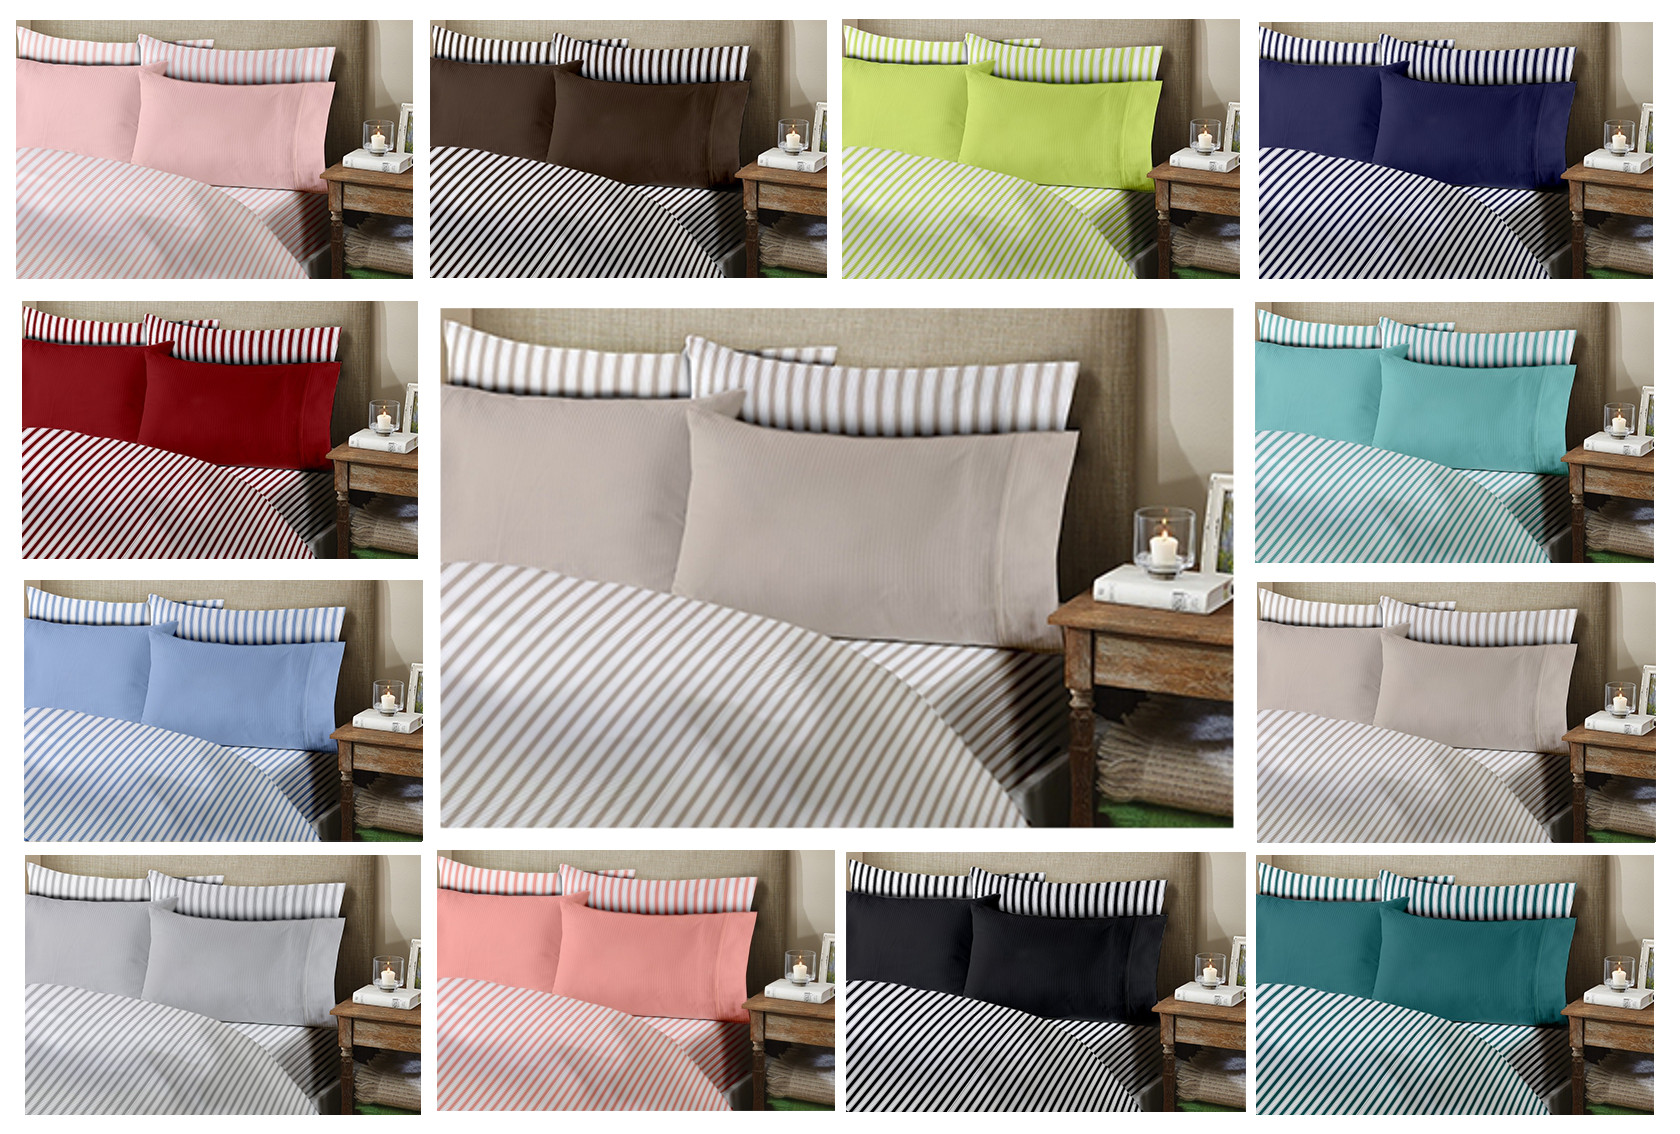 Series Egyptian Comfort Bed Sheets